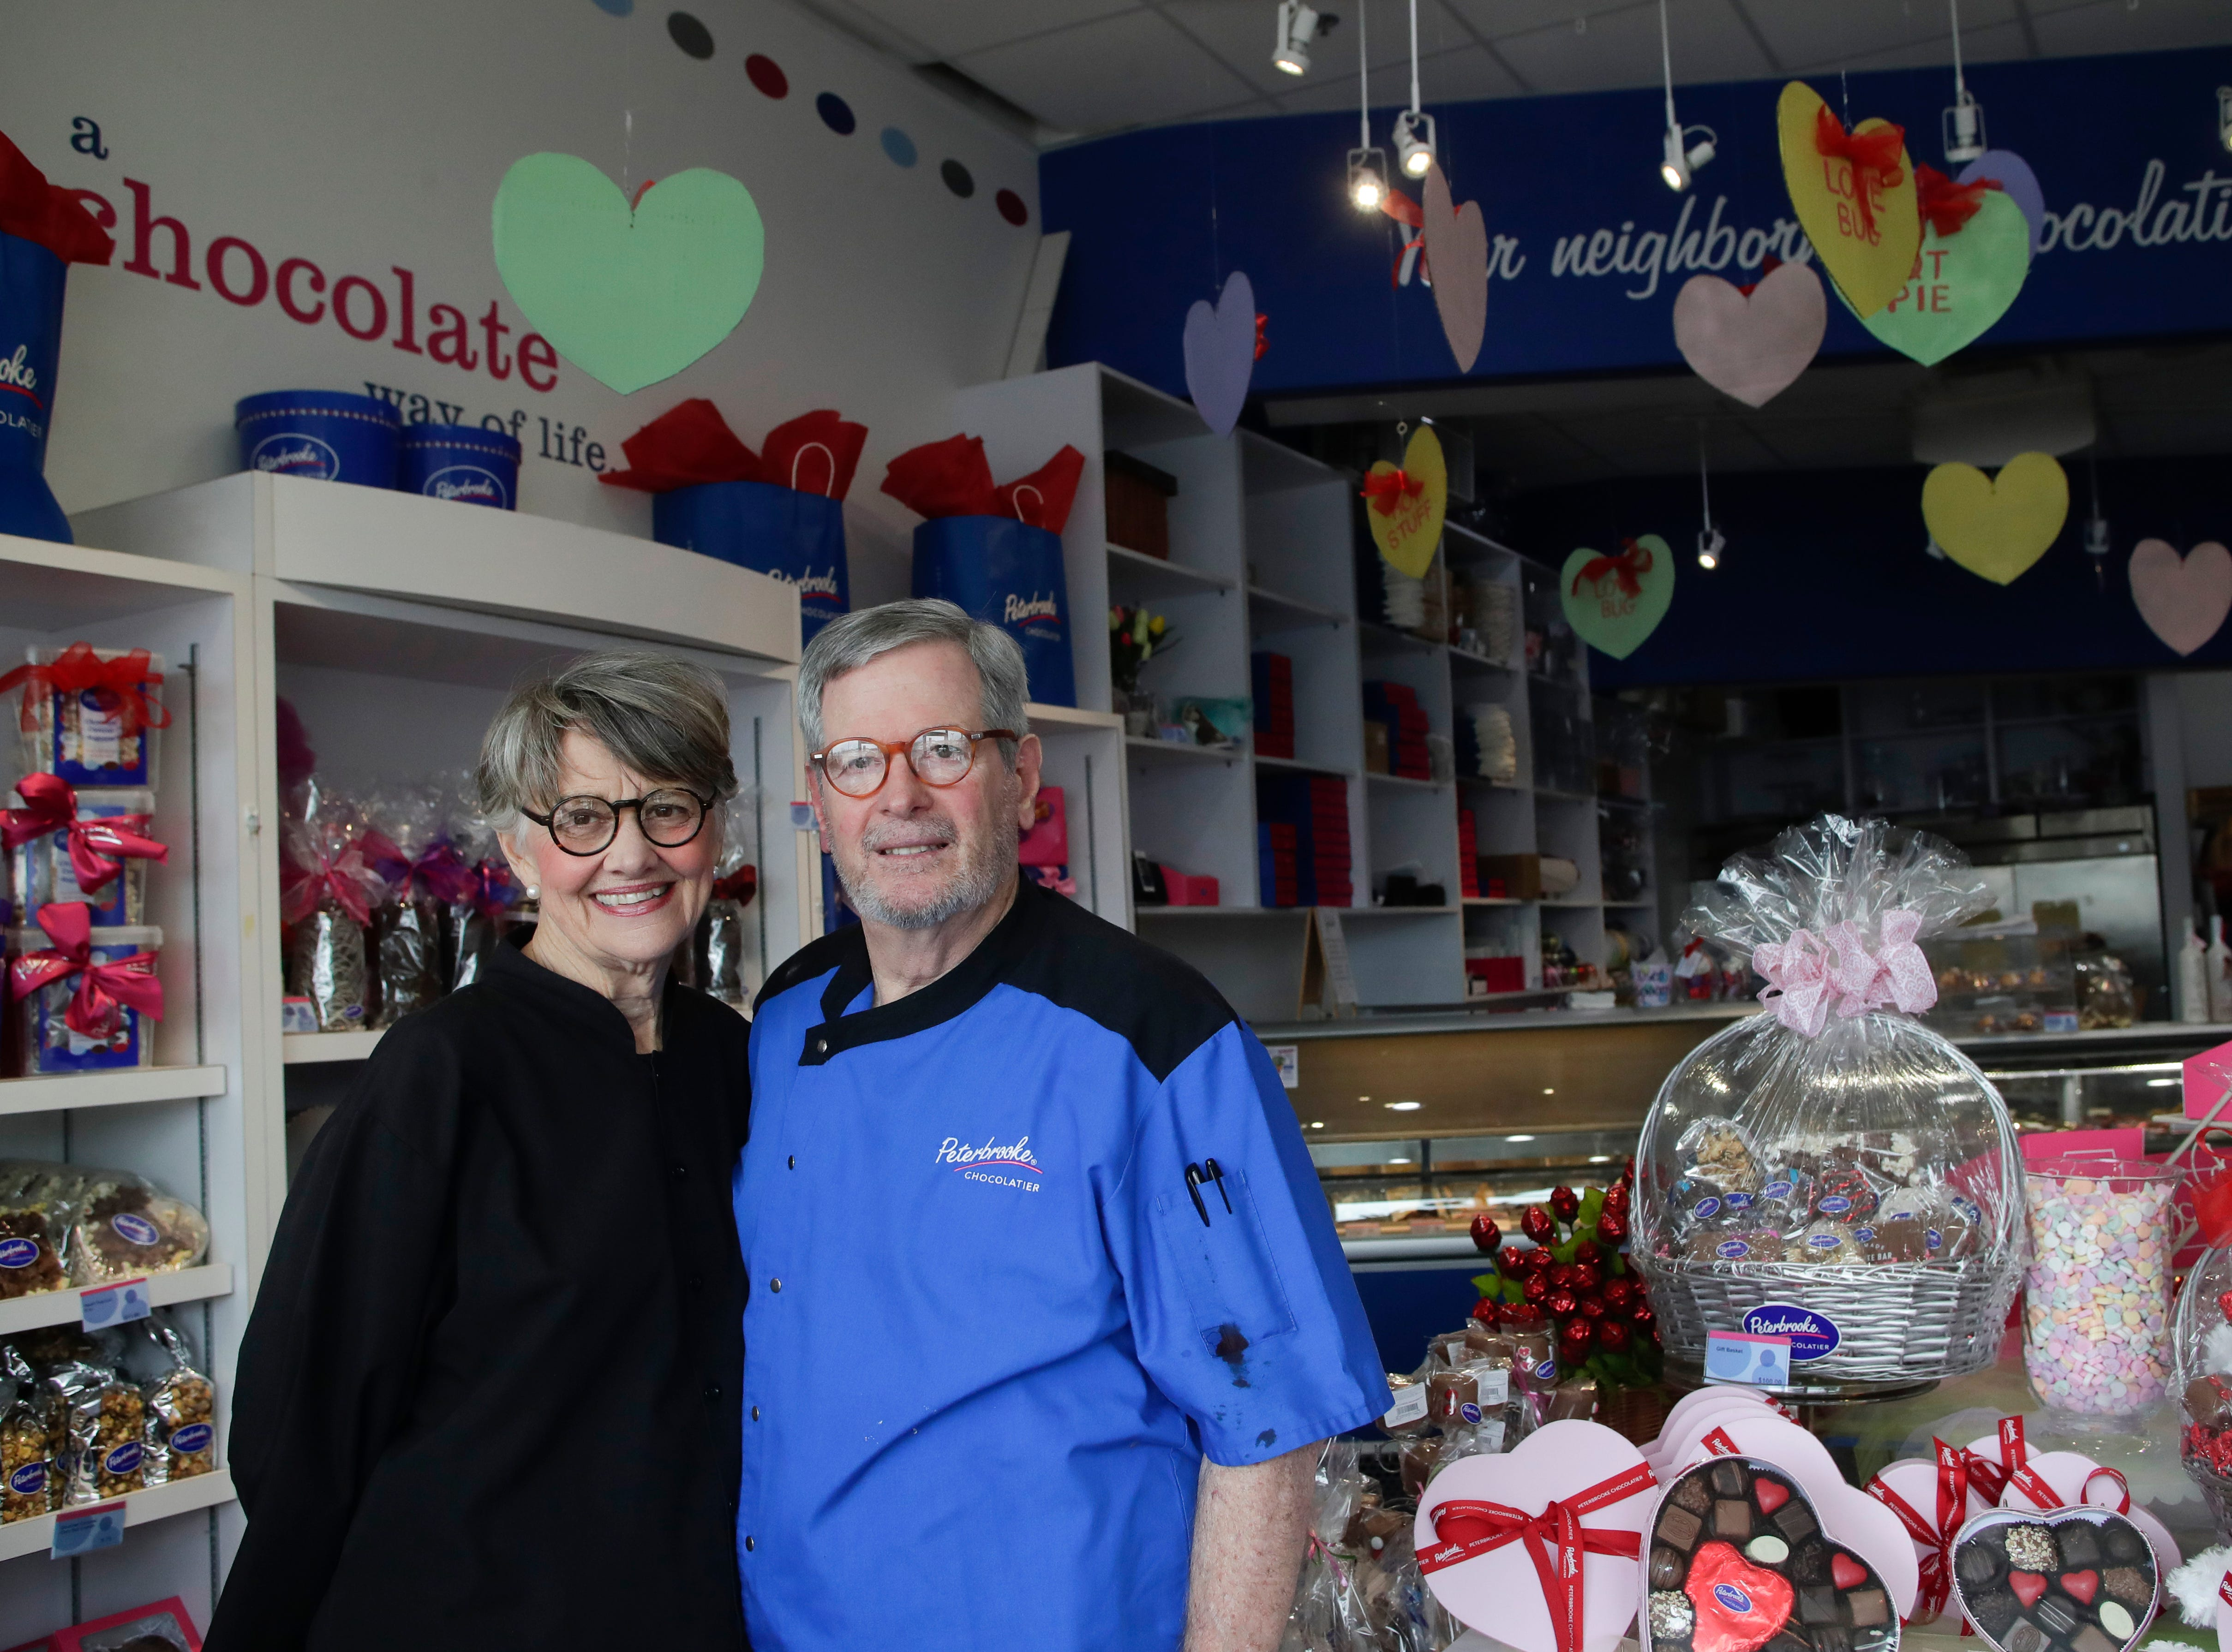 Dot and Richard Herbert, managers of Peterbrooke Chocolatier in Tallahassee, are currently in preparations for their busiest single day of business, Valentine's Day.